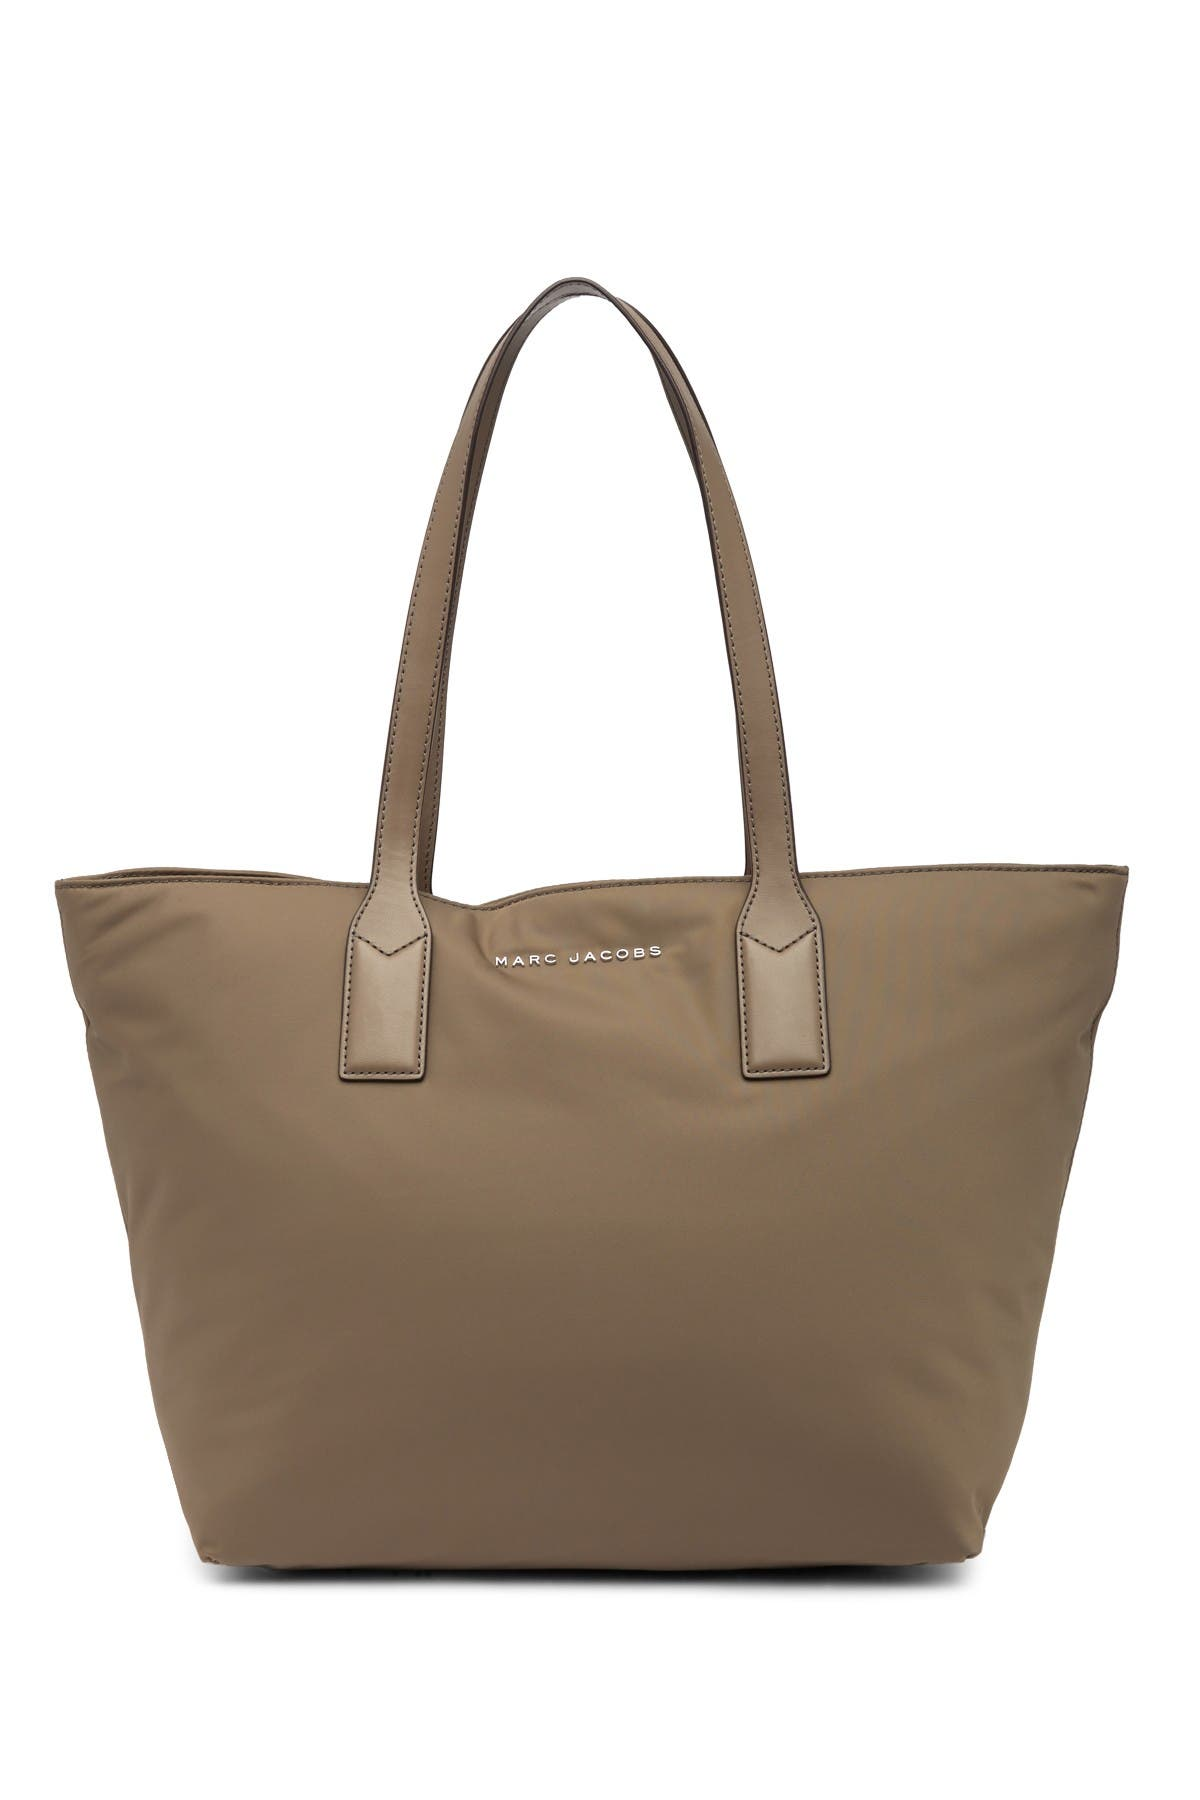 Image of Marc Jacobs Nylon Wingman Tote Bag